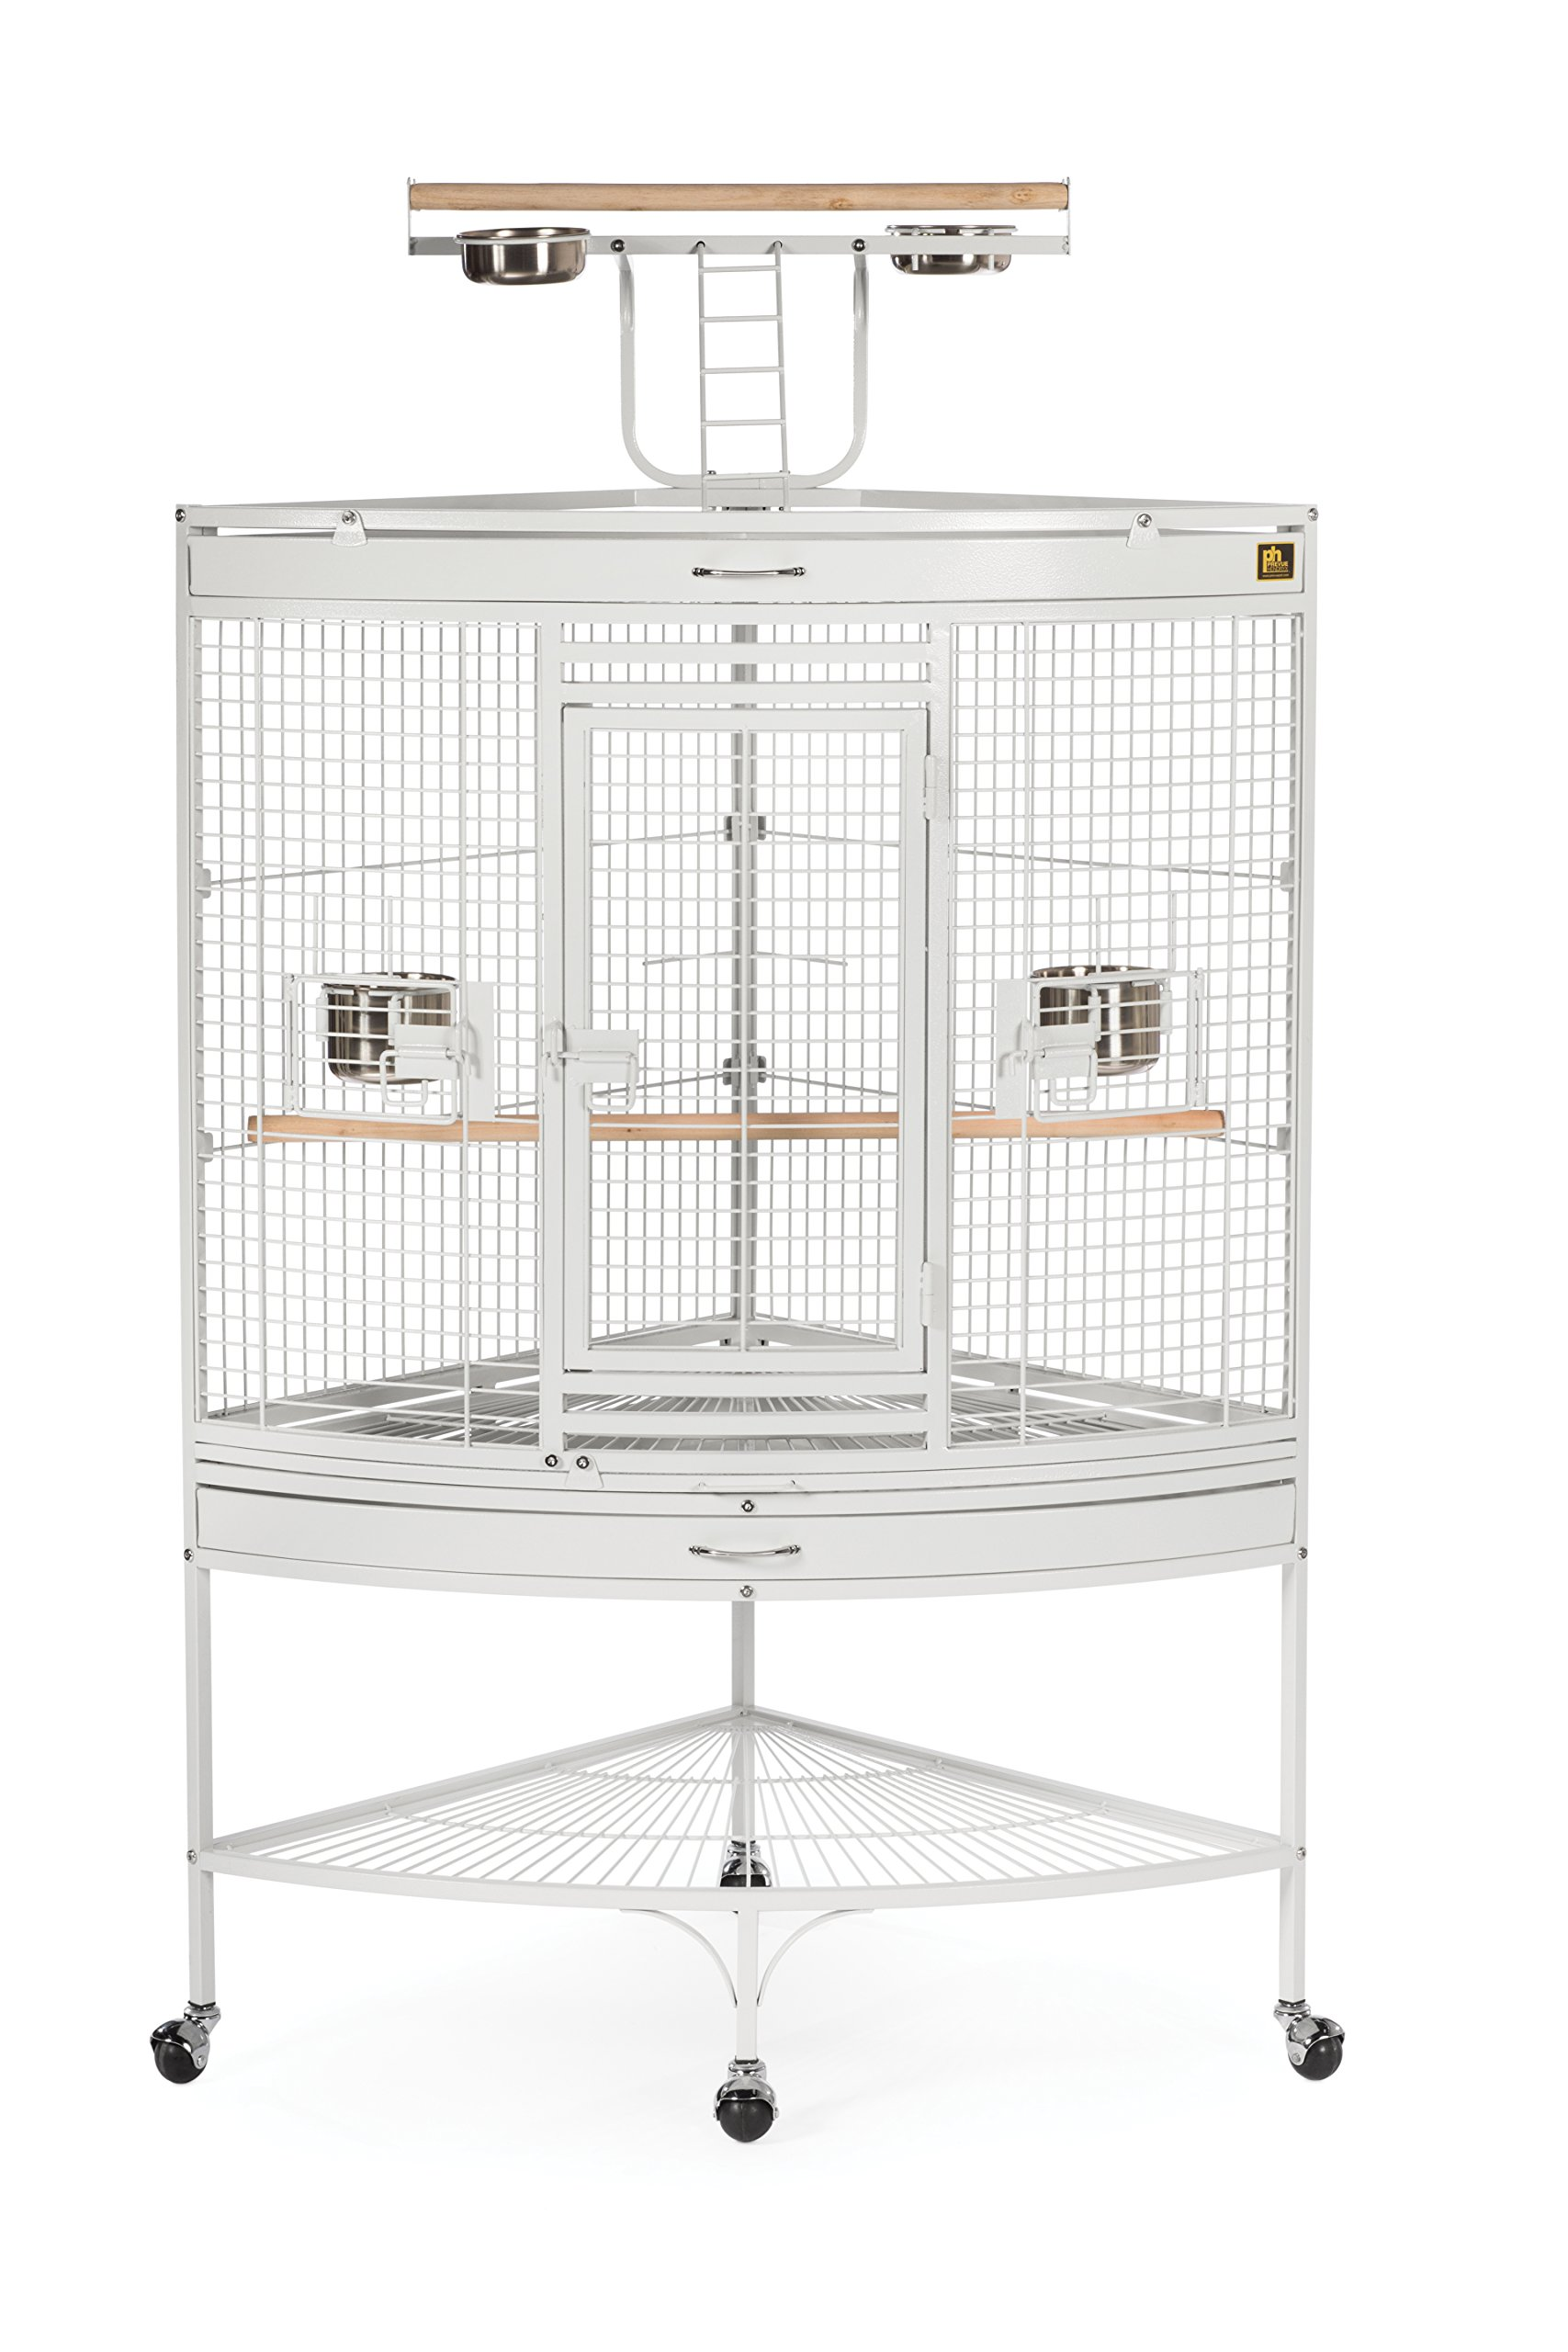 Prevue Pet Products Large Corner Bird Cage 3156W White, 37-Inch by 27-Inch by 63-Inch by Prevue Hendryx